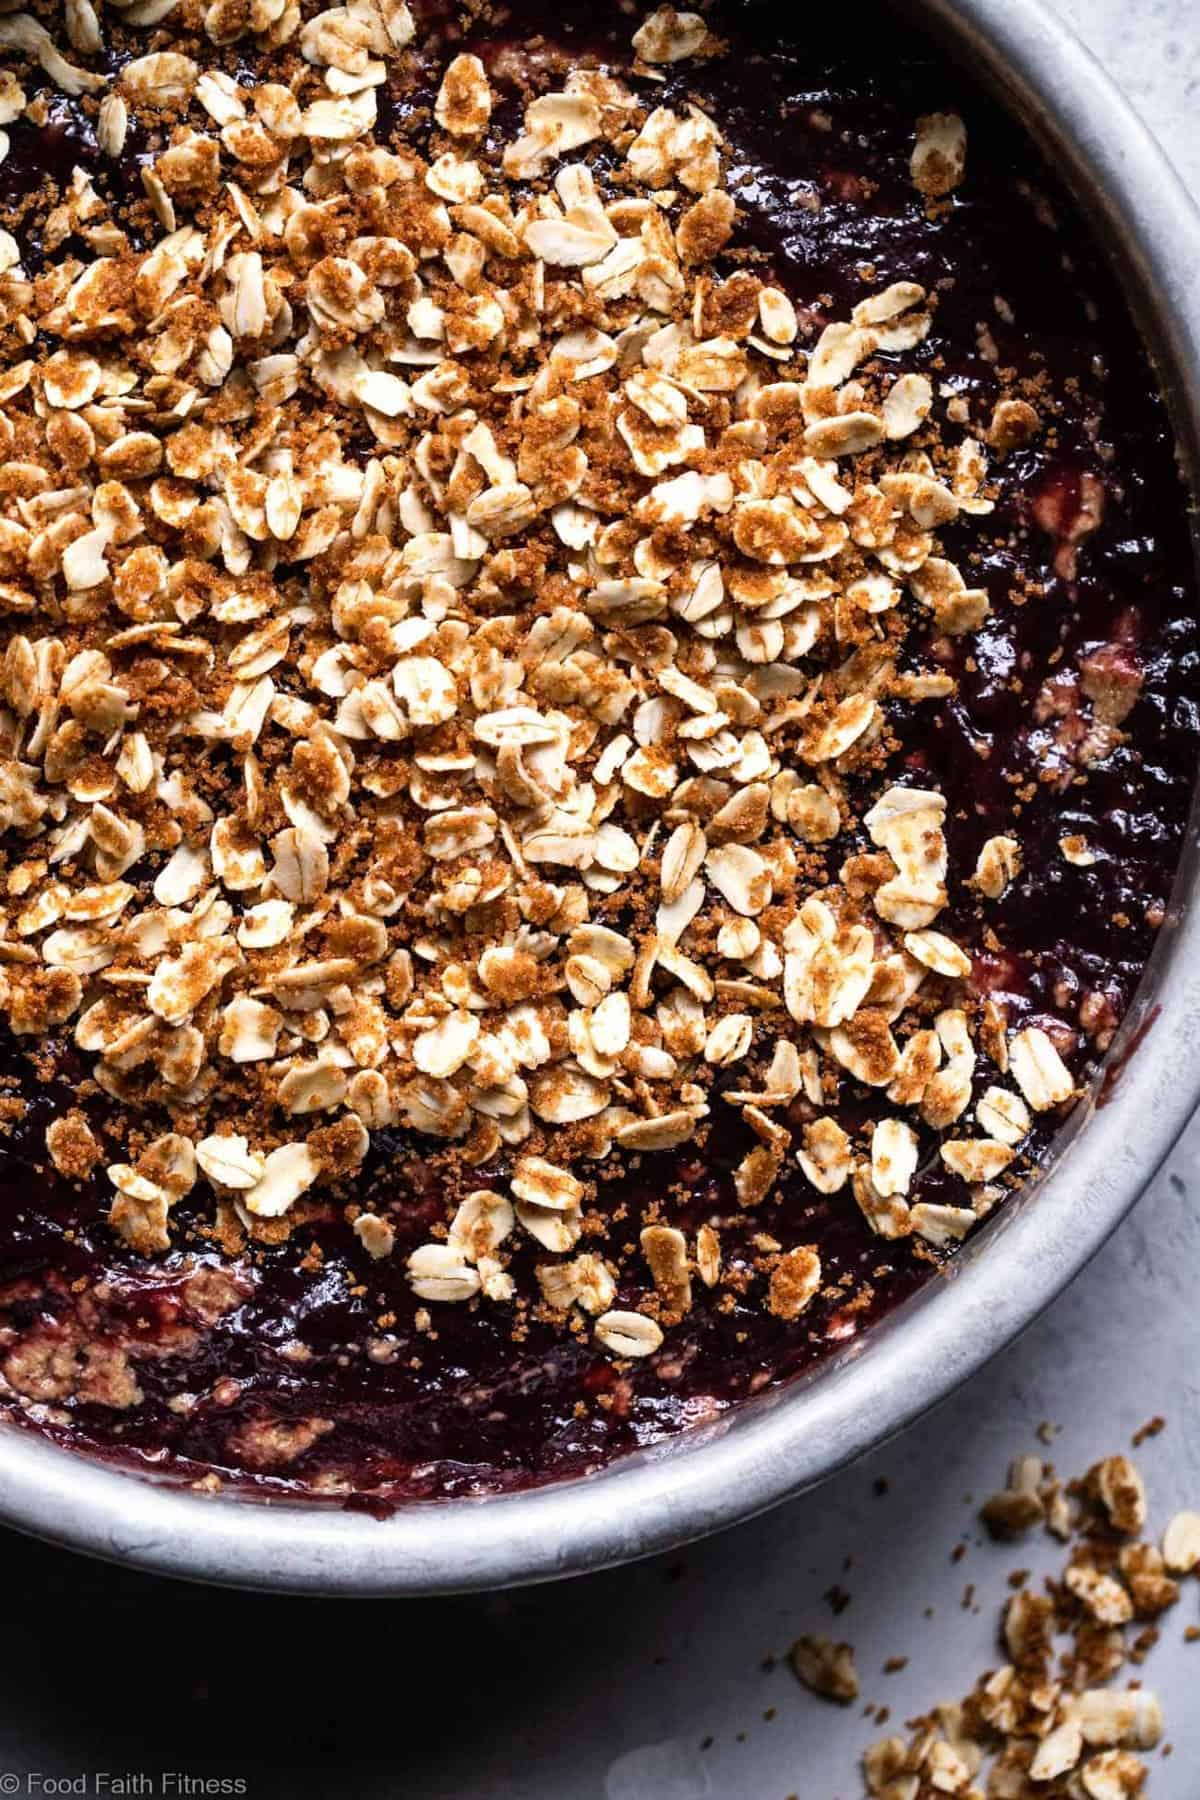 Gluten Free Eggless Coffee Cake - This tender, moist Gluten Free Coffee Cake has a tasty blackberry swirl and is loaded with a crunchy, crispy crumble topping! It's sure to be a hit and does not taste healthy! | #Foodfaithfitness |